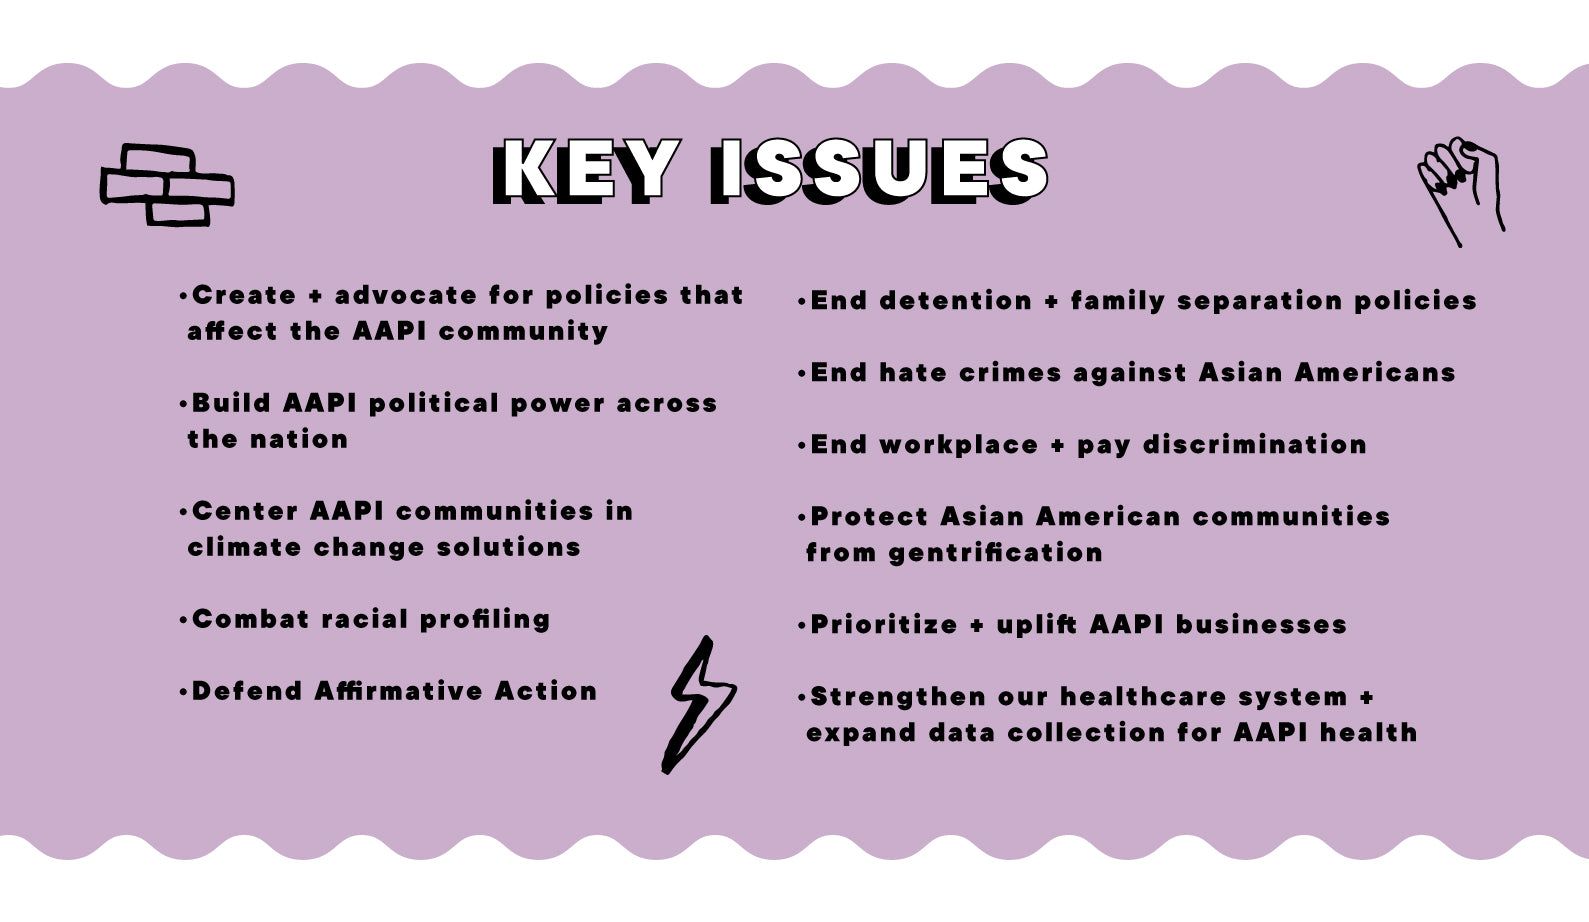 KEY ISSUES: Create + advocate for policies that affect the AAPI community, Build AAPI political power across the nation, Center AAPI communities in climate change solutions, Combat racial profiling, Defend Affirmative Action,  End detention + family separation policies,  End hate crimes against Asian Americans, End workplace + pay discrimination, Protect Asian American communities from gentrification,  Prioritize + uplift AAPI businesses, Strengthen our healthcare system + expand data collection for AAPI health